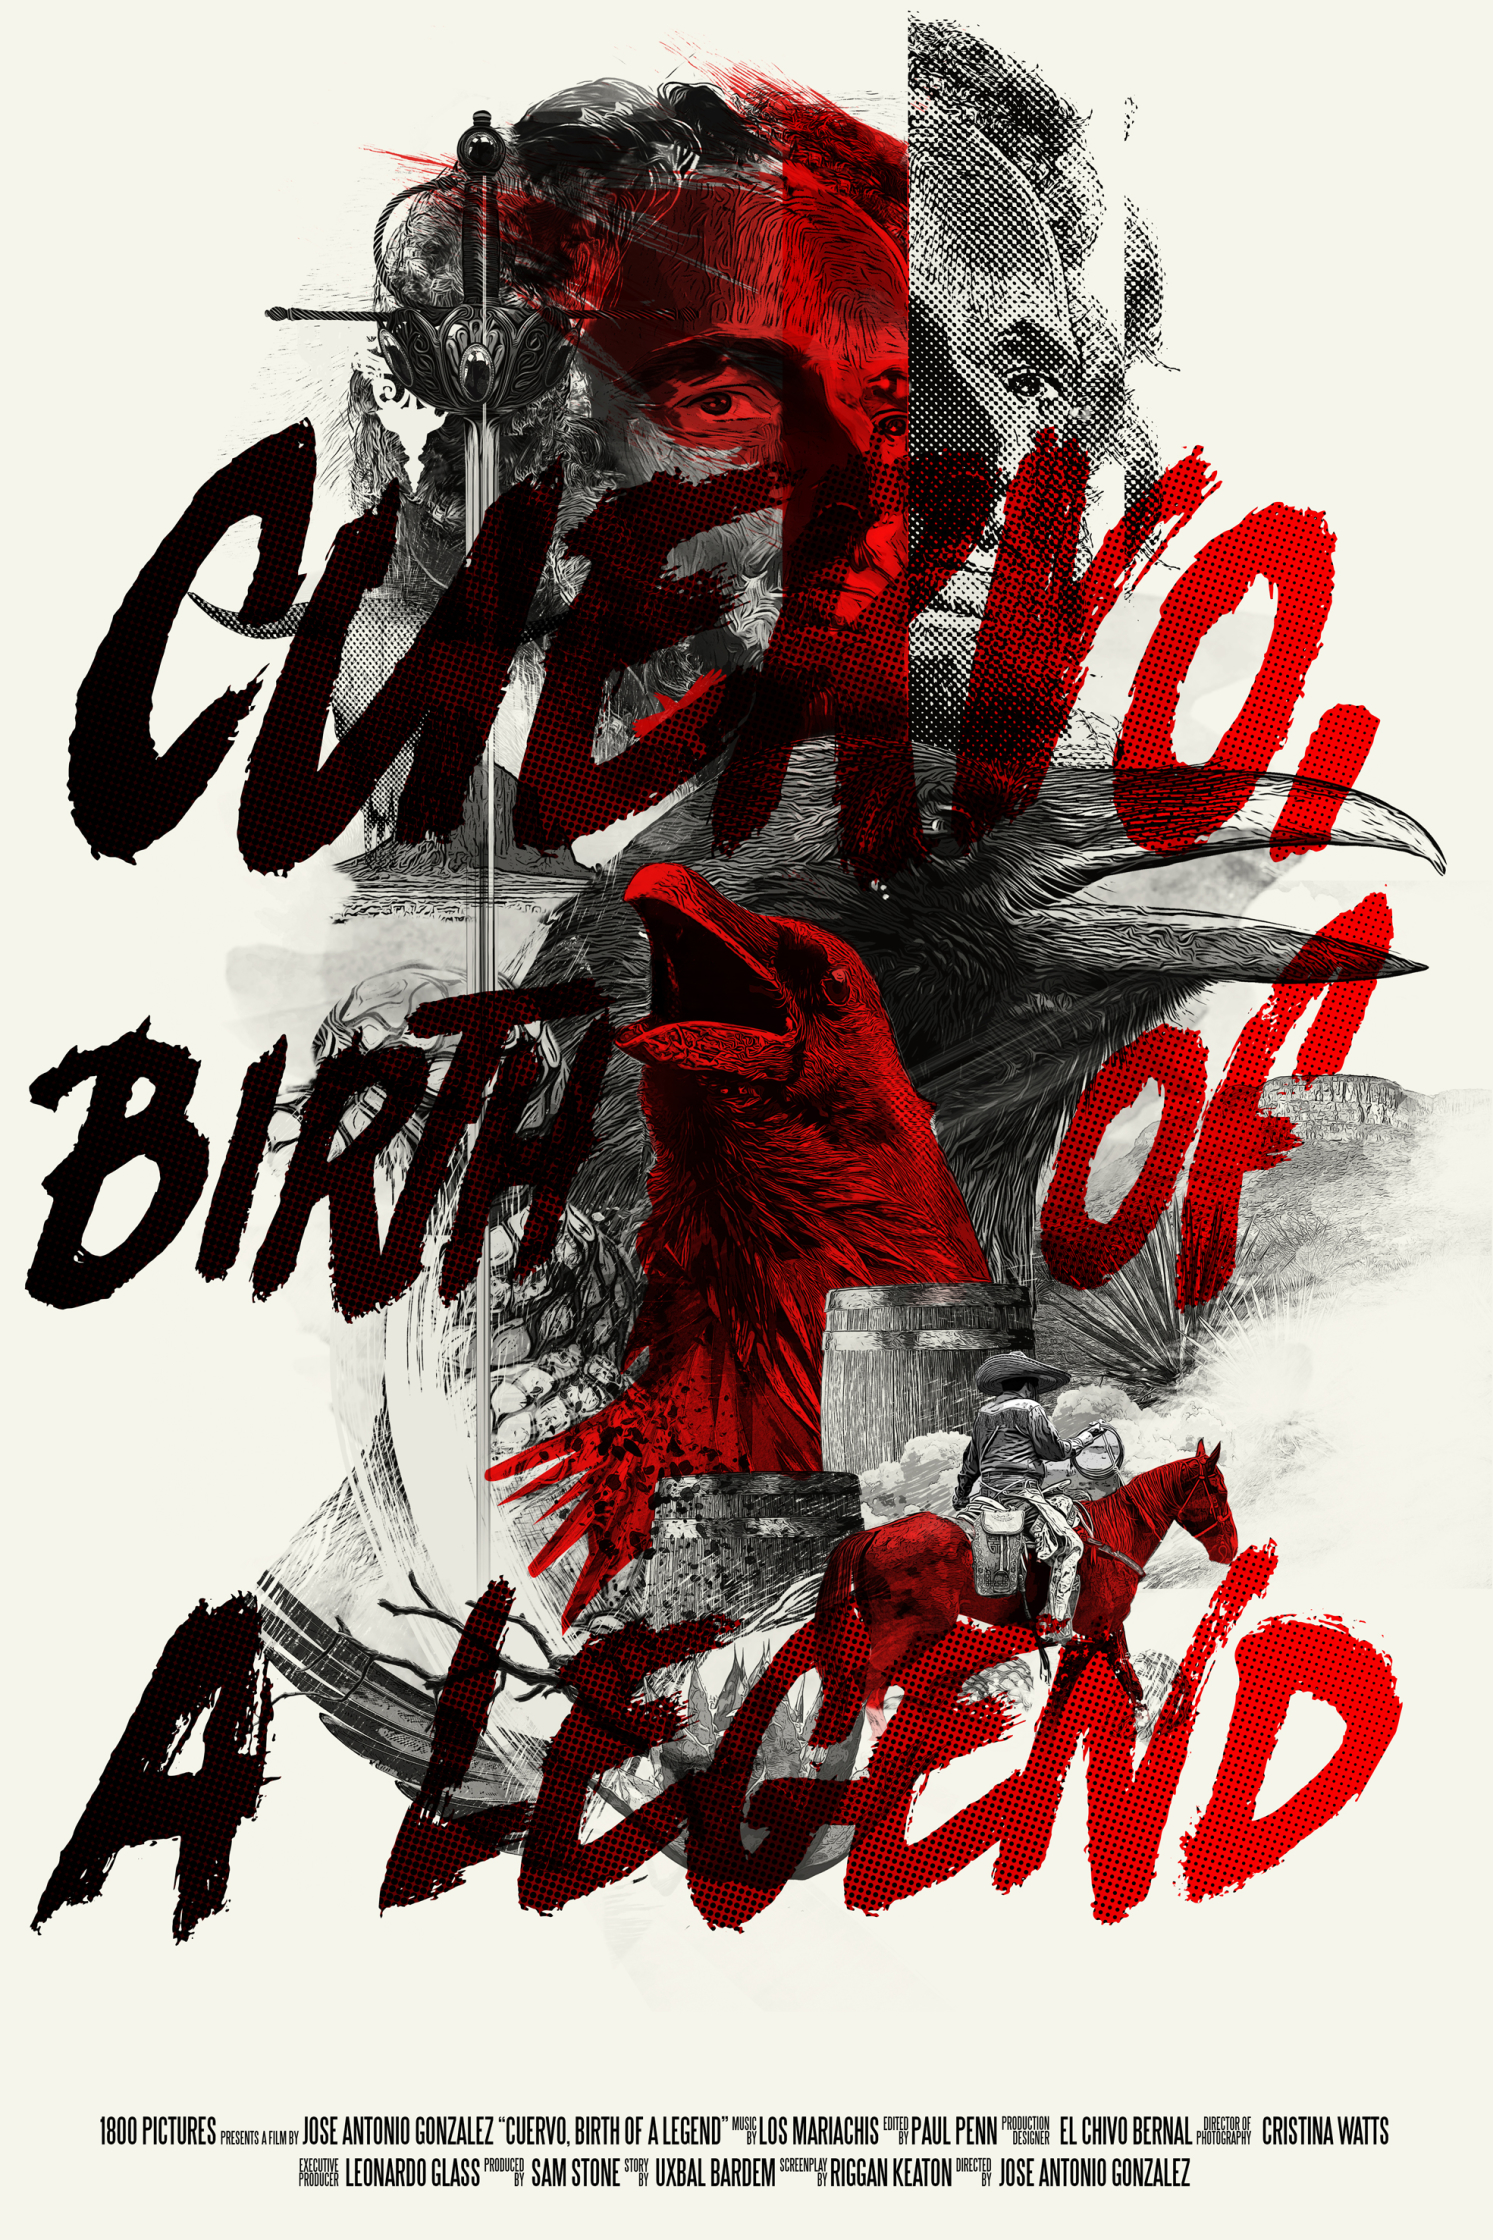 Cuervo,-Birth-Of-A-Legend-HiRes.jpg